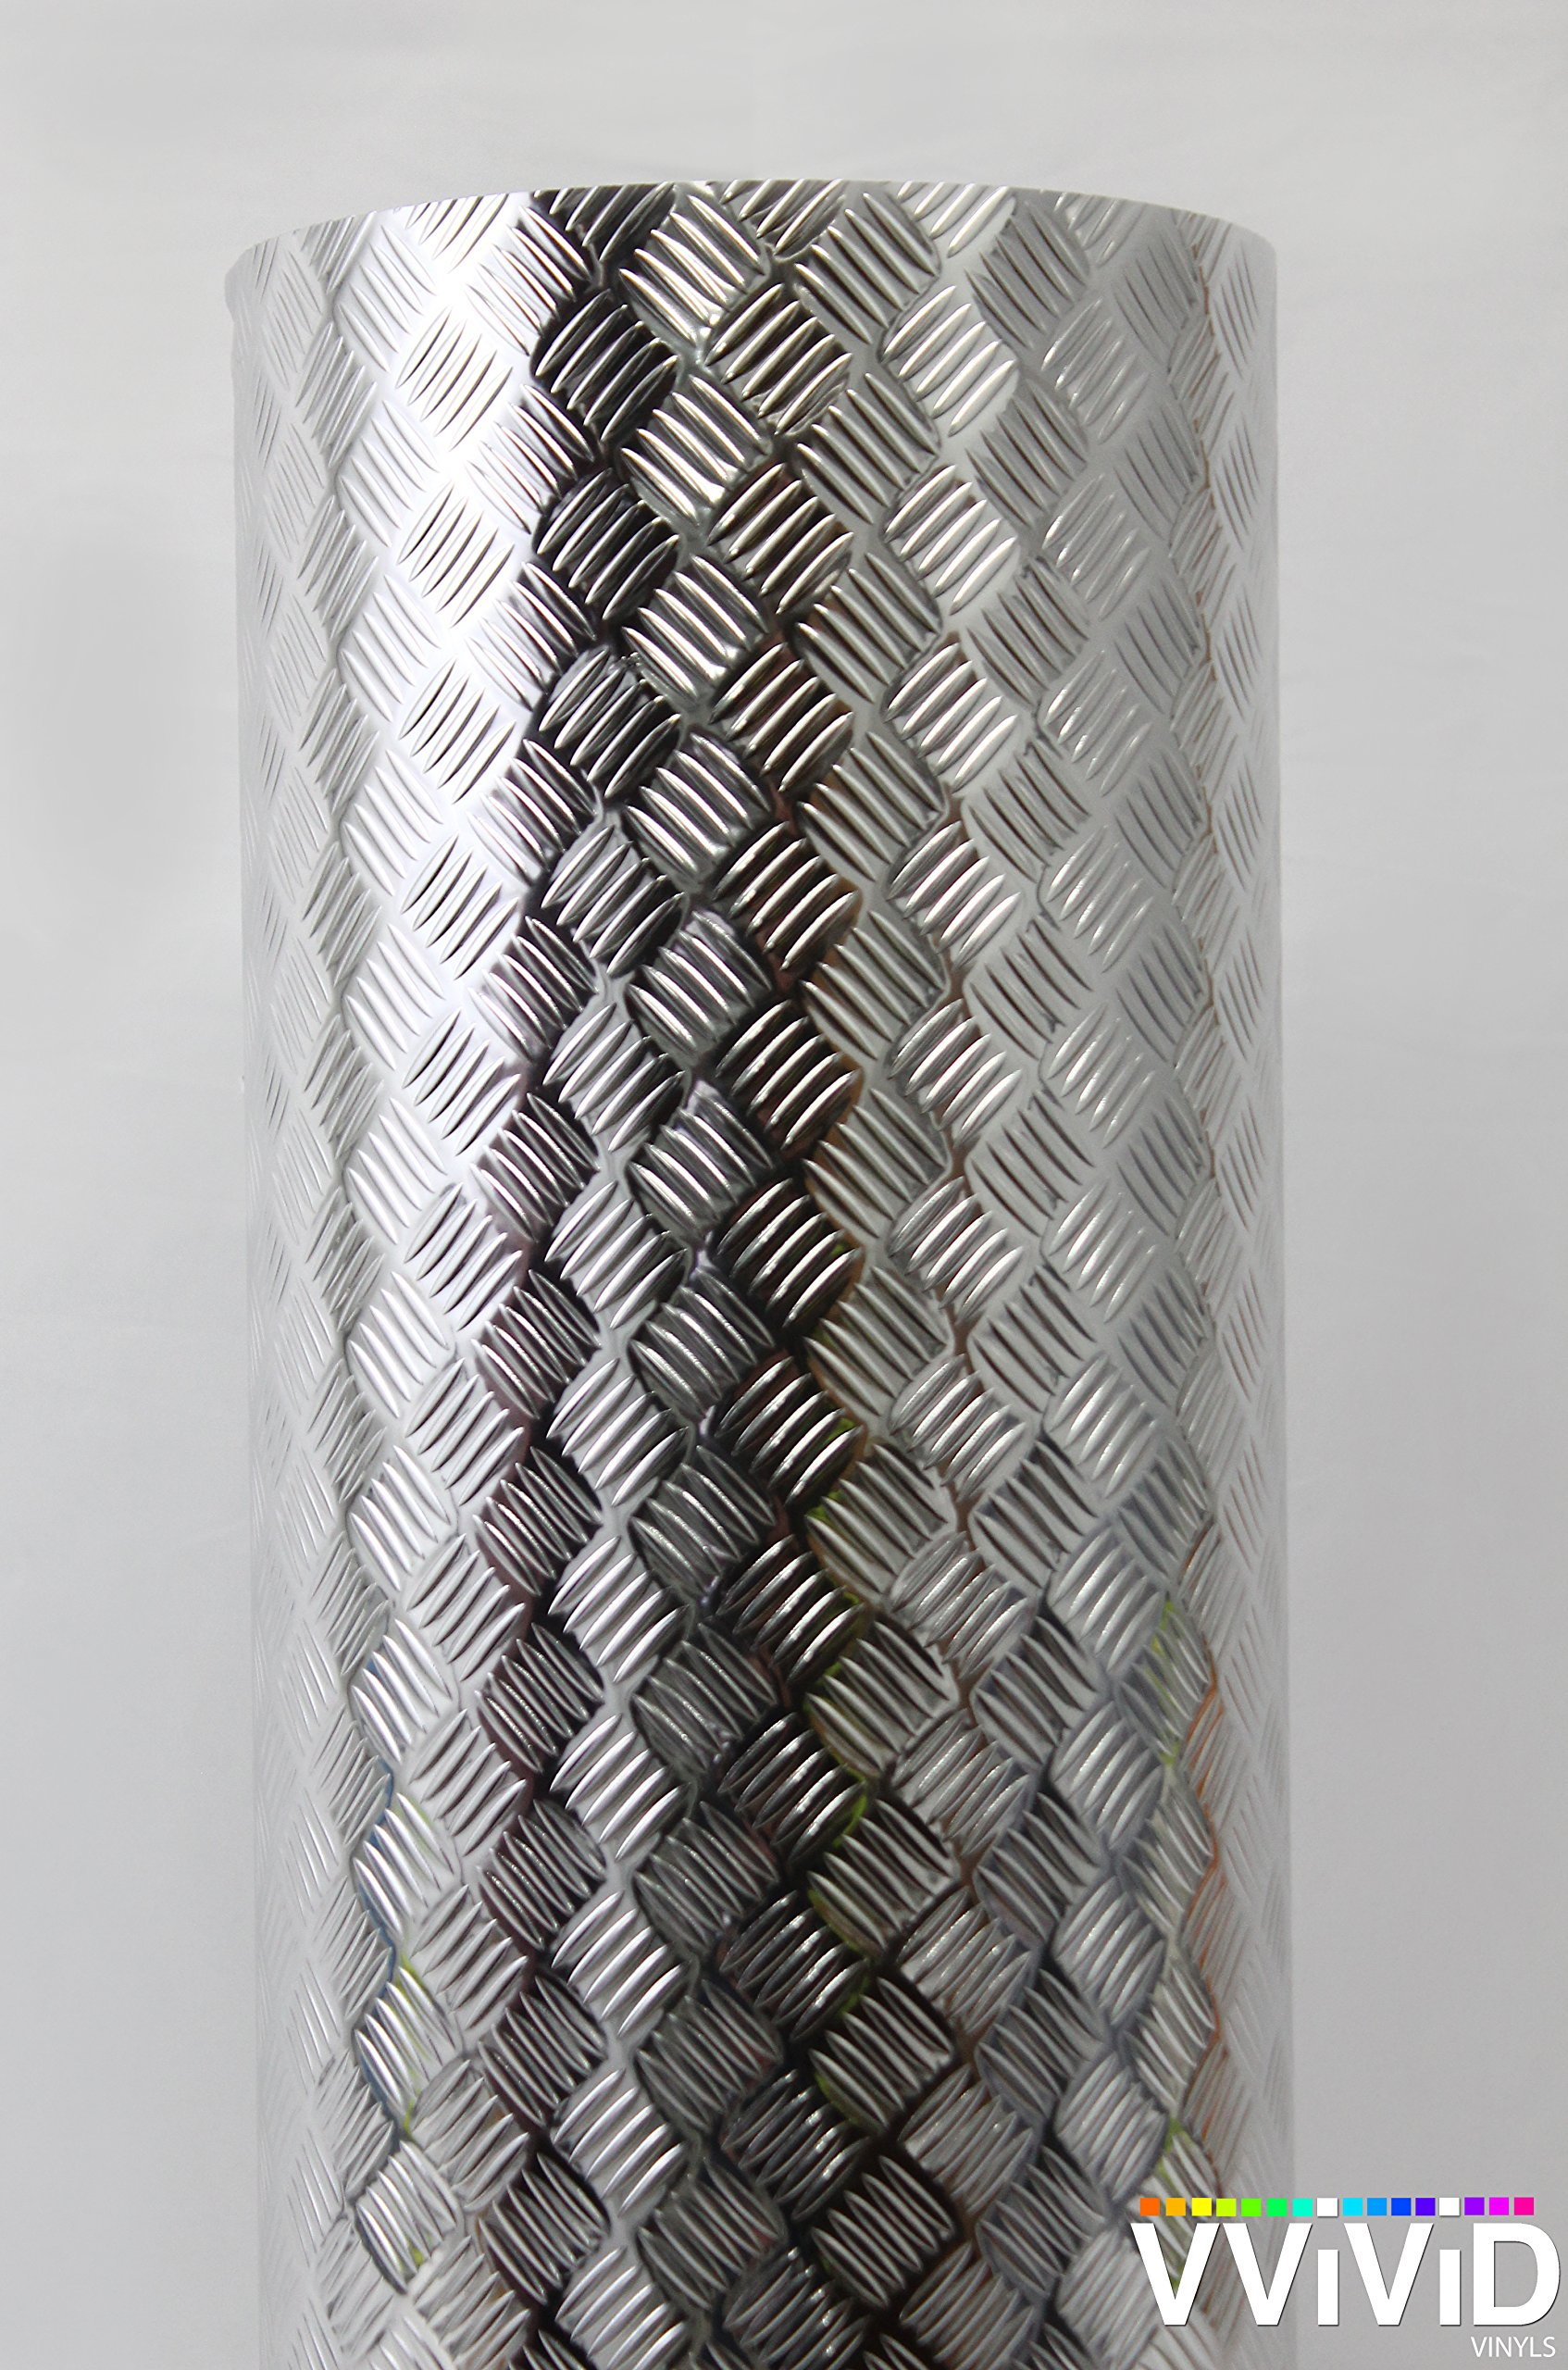 Industrial Utility Diamond Plate Metallic Chrome Finish Vinyl Wrap 17.8'' x 6.5ft Contact Paper Adhesive Roll for Shelves Walls Flooring